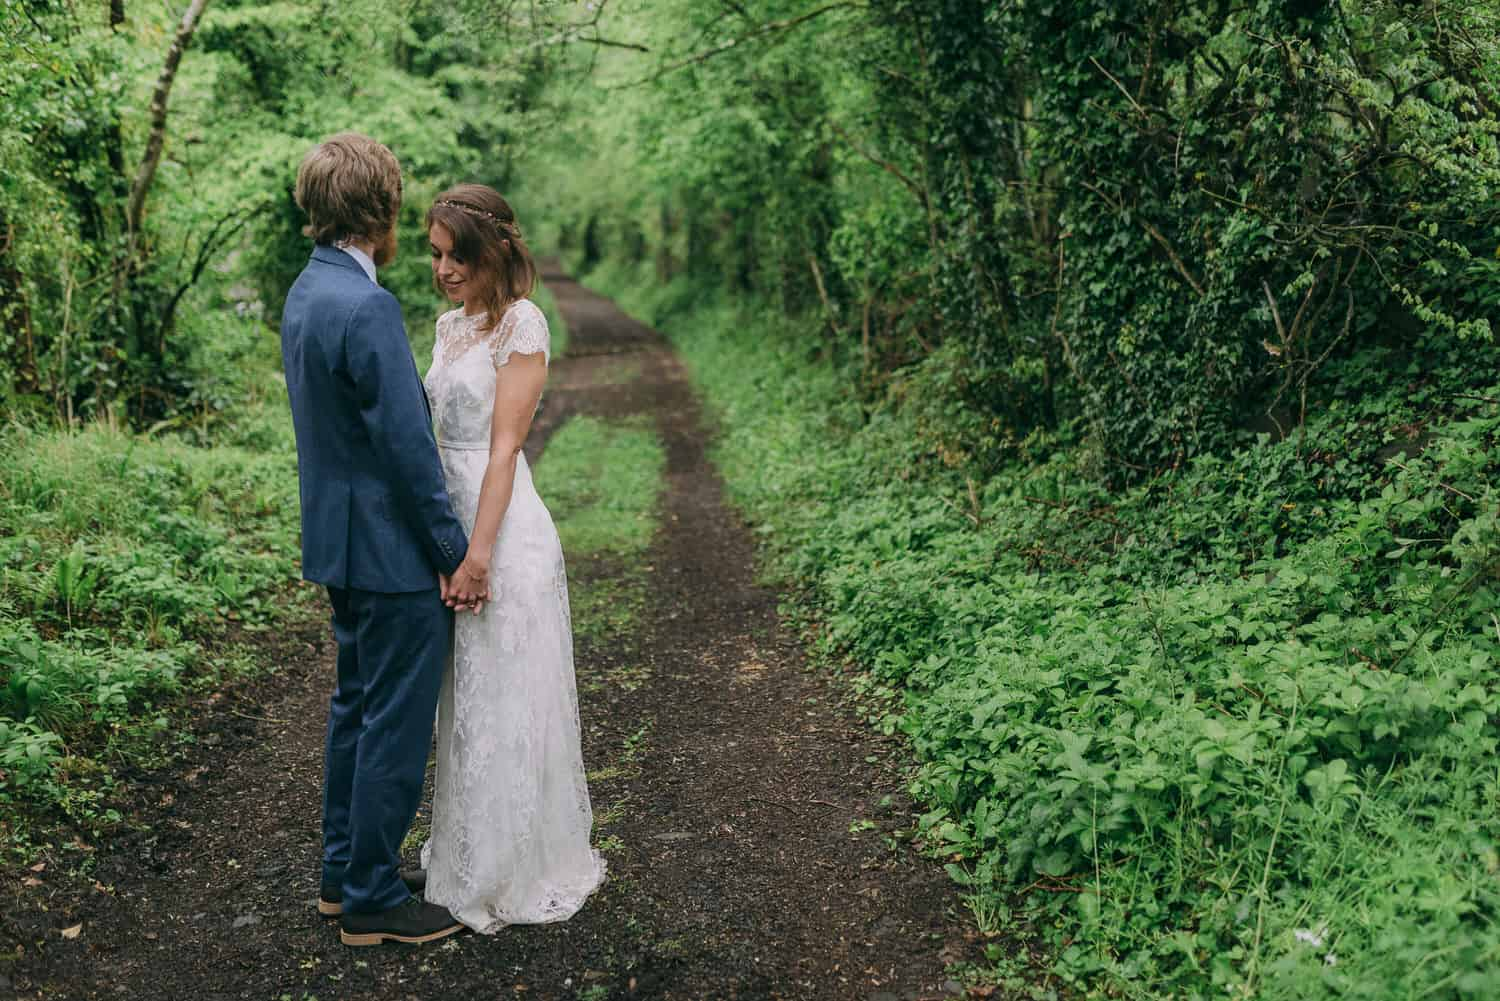 Josie and Rich, Great Barn Devon wedding, Devon wedding, Barn wedding, Chris Scuffins Photography